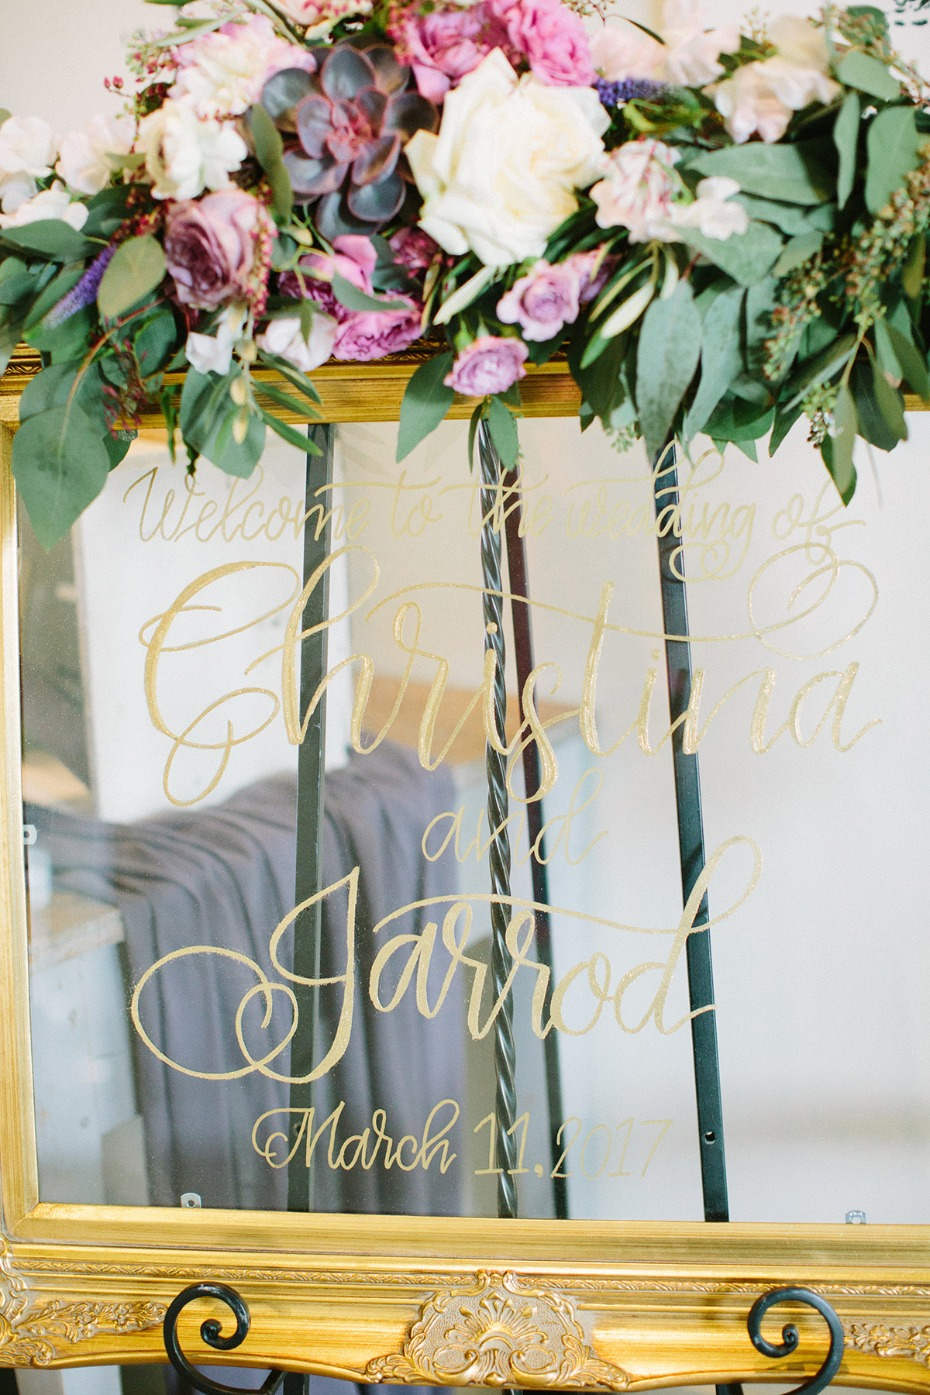 Window welcome sign idea with gold calligraphy